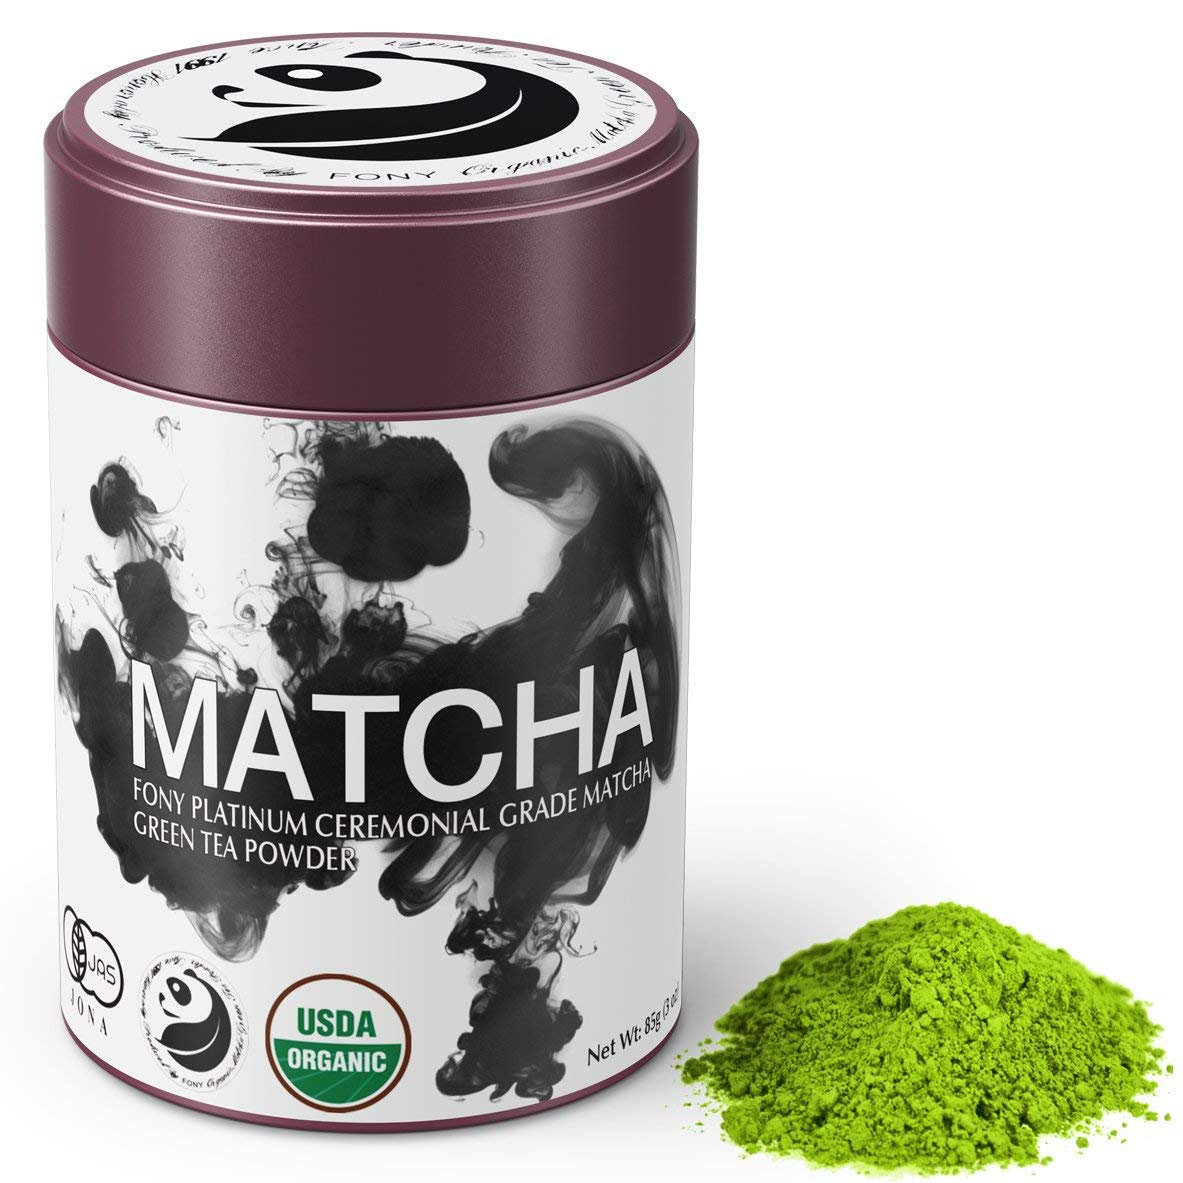 FONY 85g Japanese Matcha Green Tea Powder, USDA Organic - Authentic Ceremonial Grade (Platinum, Tin)